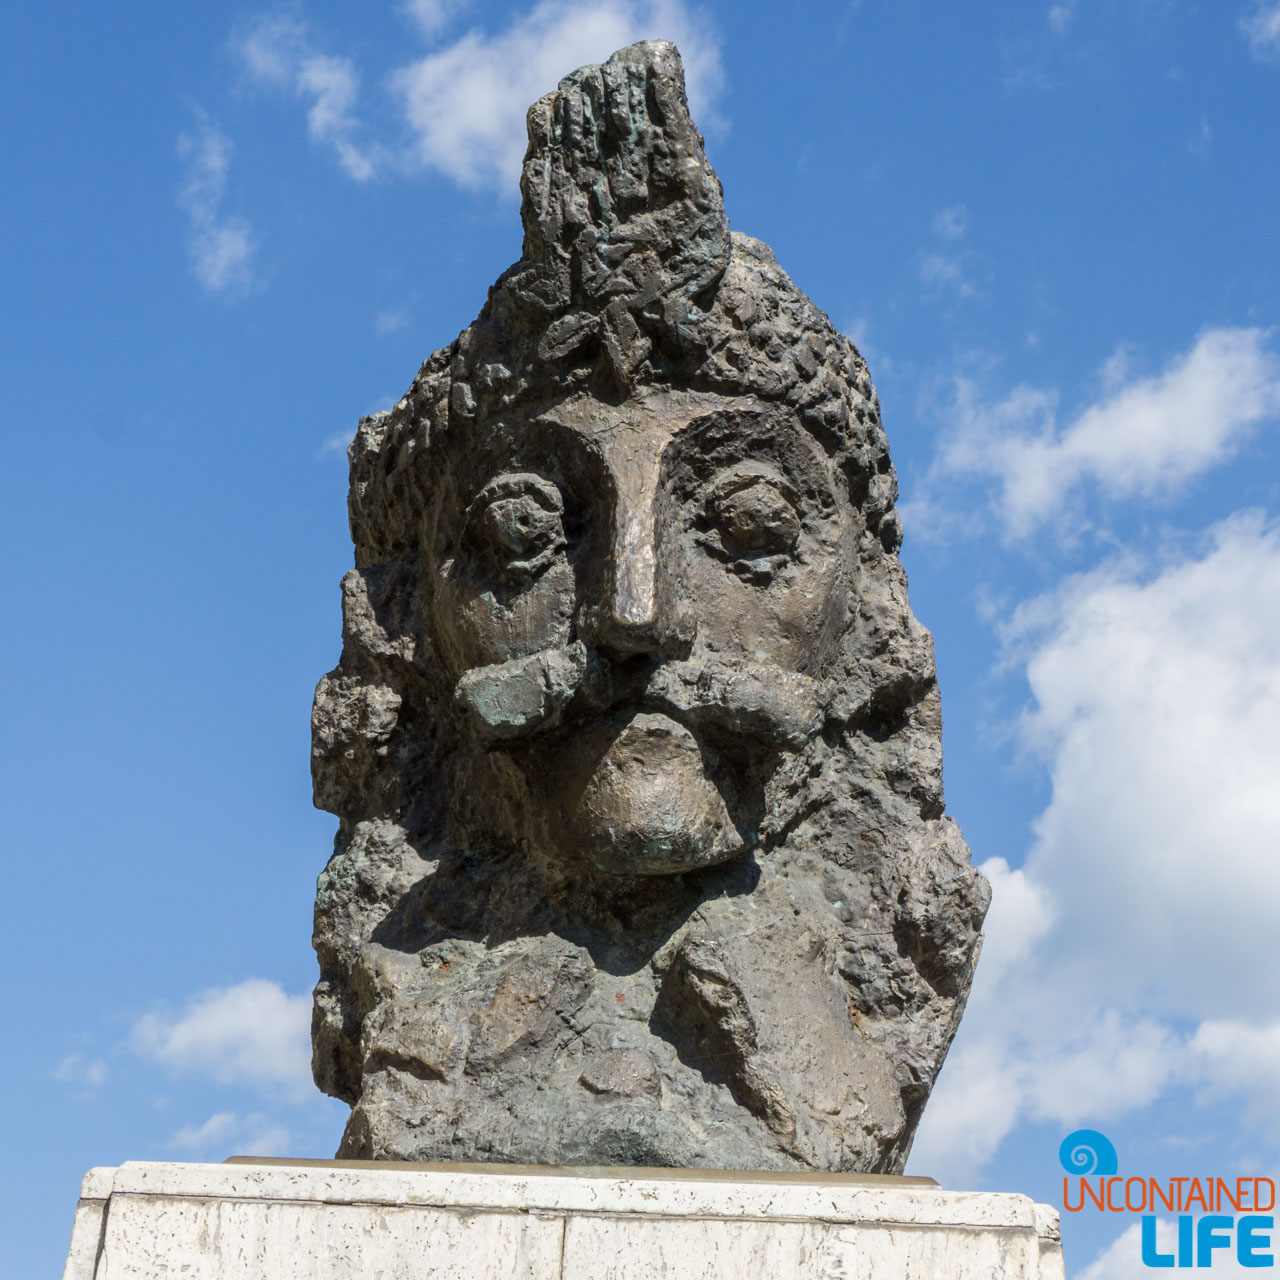 Vlad the Impaler Statue, Road Trip through Transylvania, Romania, Uncontained Life